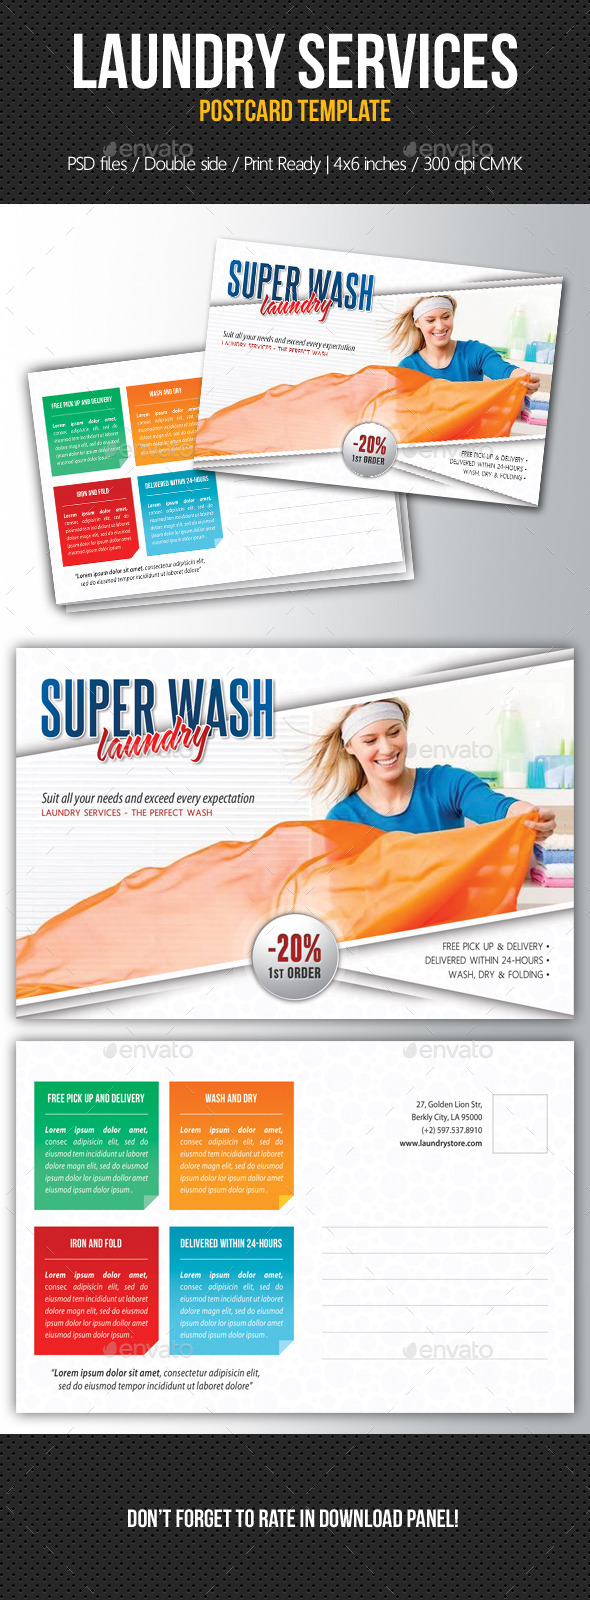 Laundry Services Postcard Template V03 - Cards & Invites Print Templates